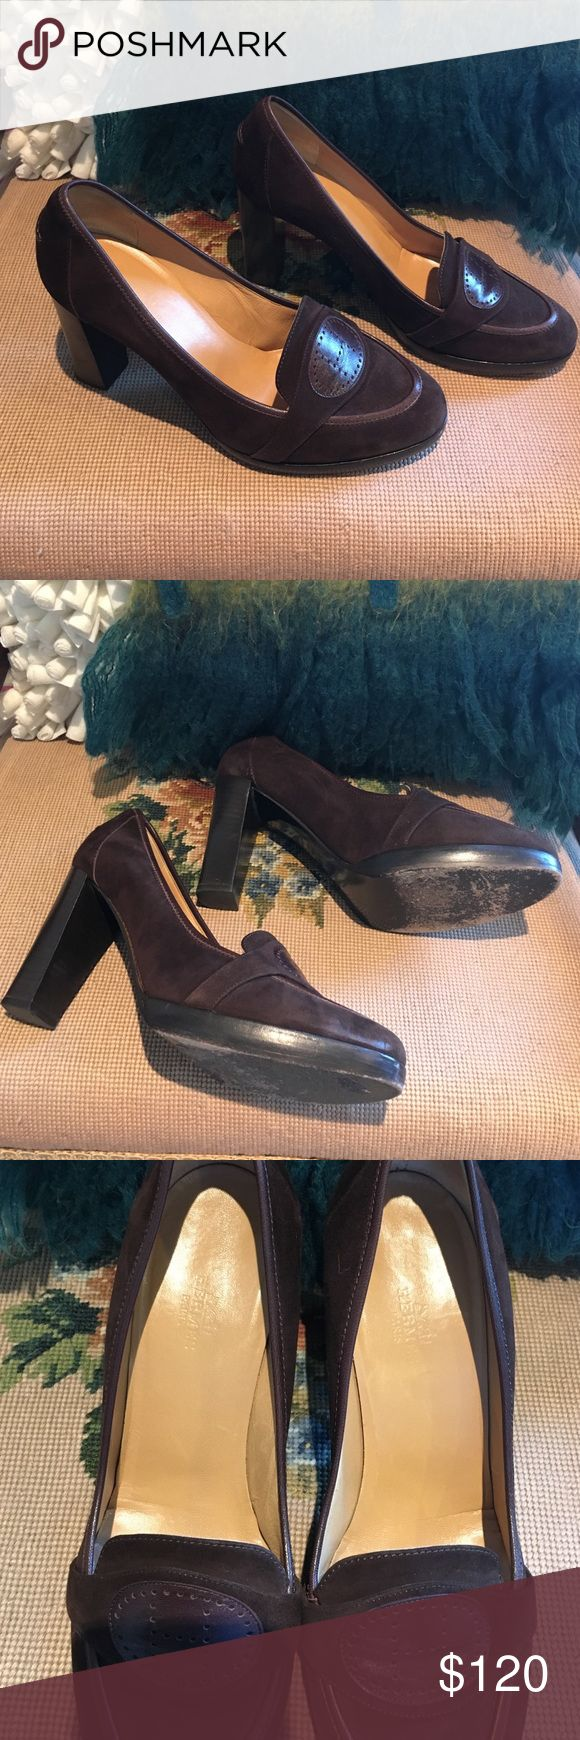 Hermes brown suede loafer pumps sz40/ 9 Hermes brown suede loafer pumps sz 40/ 9. Gently used no flaws besides scuffs on bottom sole. No box. Hermes Shoes Heels